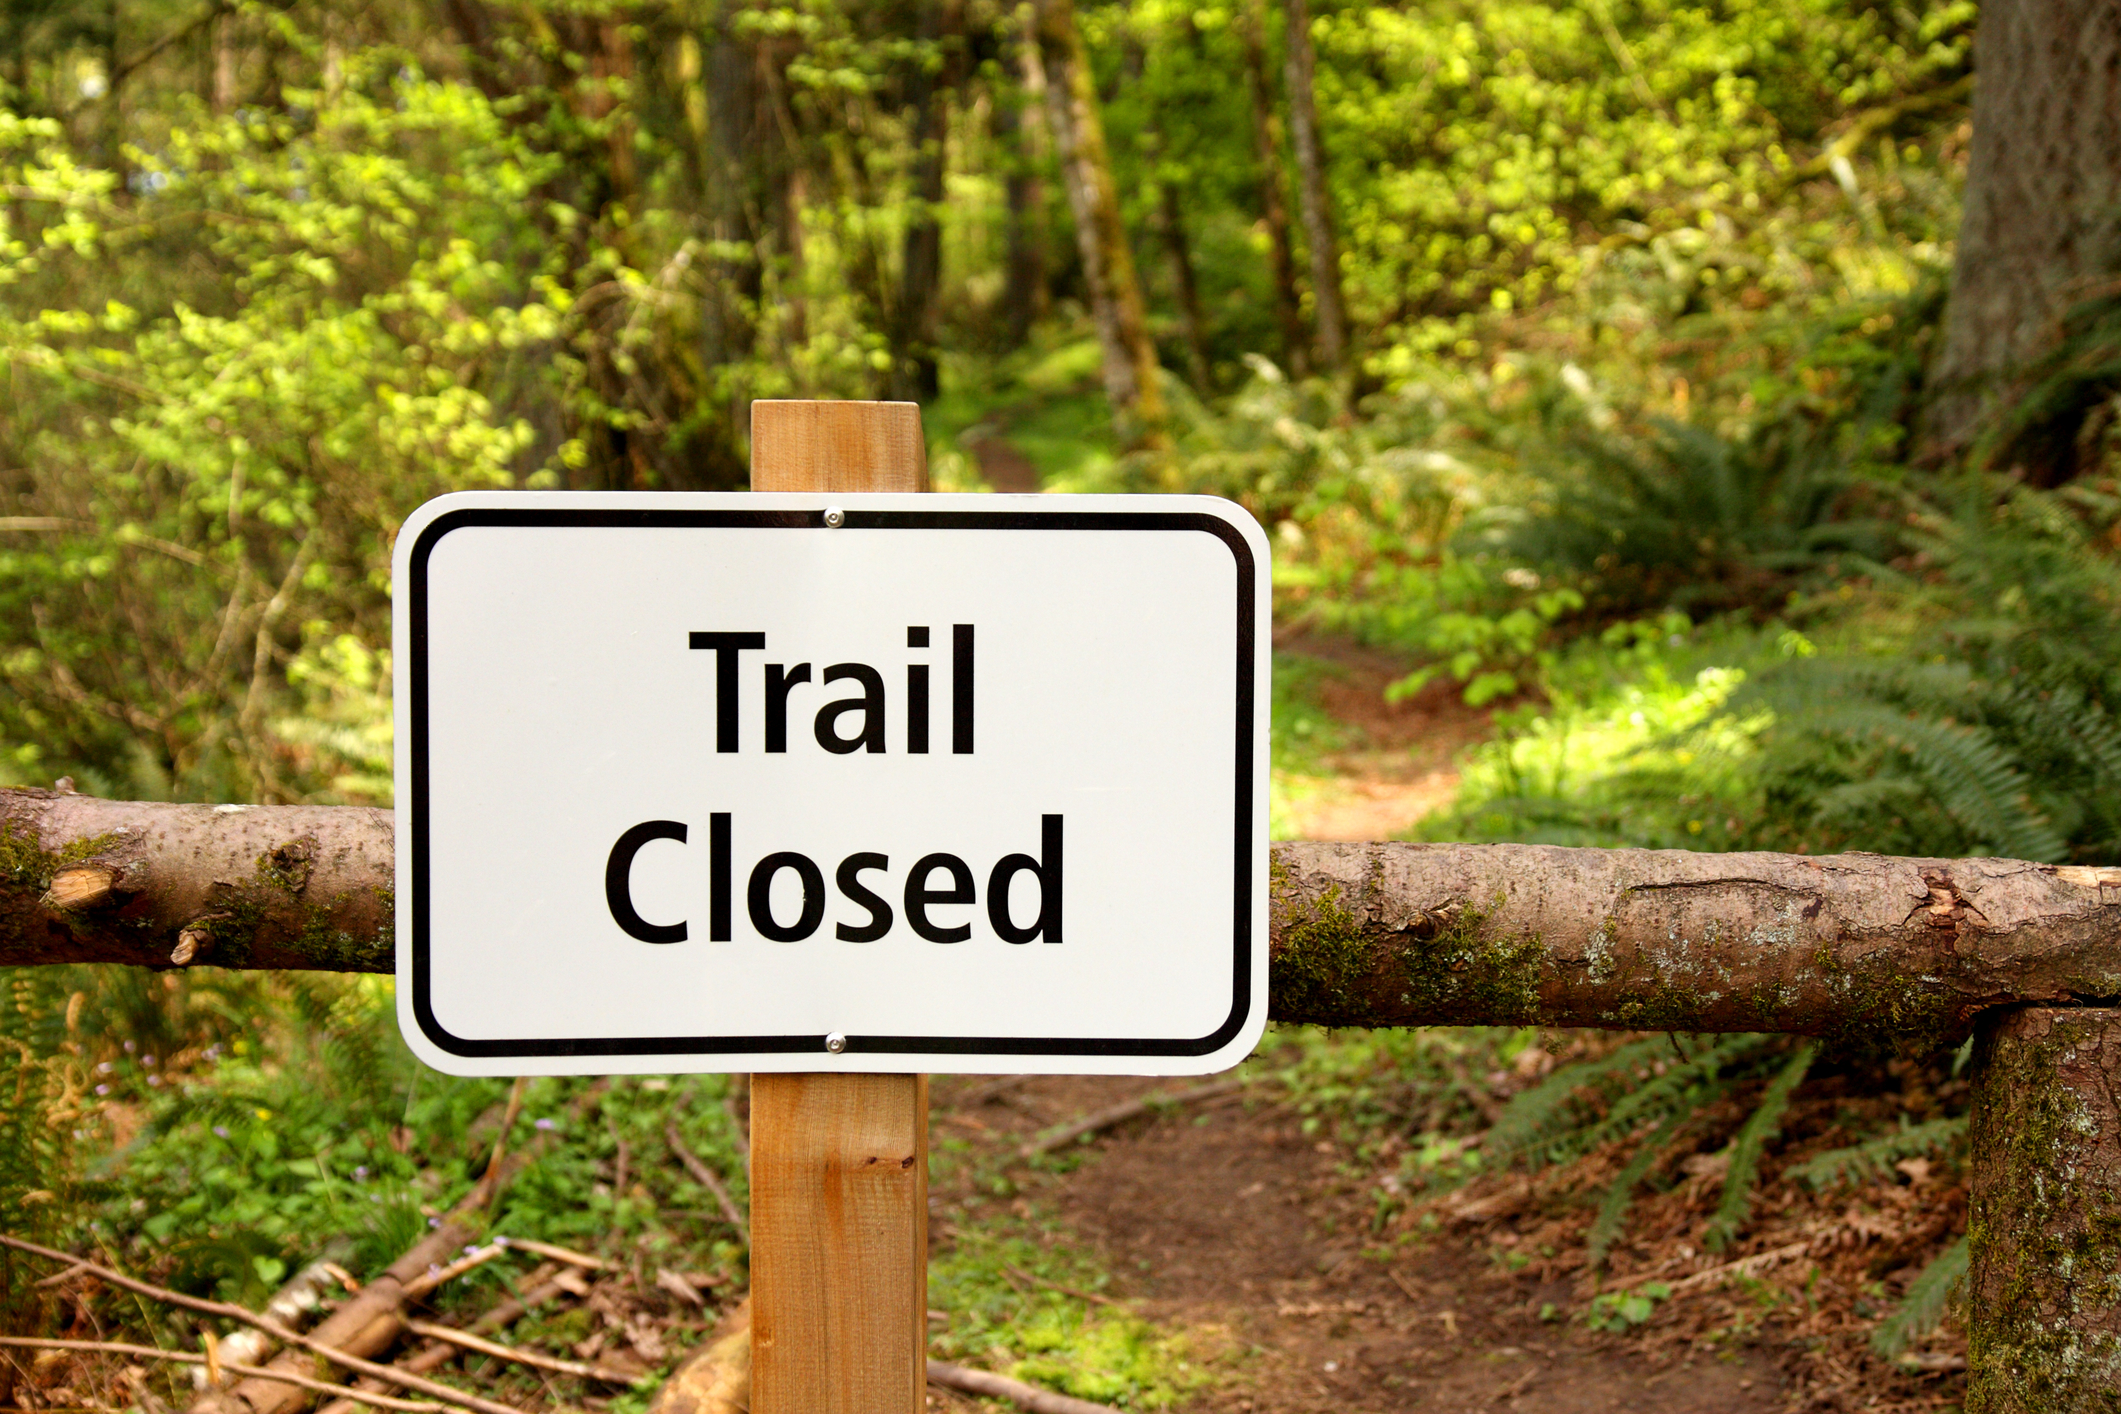 Temporary closure of the Heysen Trail in the Montacute Conservation Park, April 2018